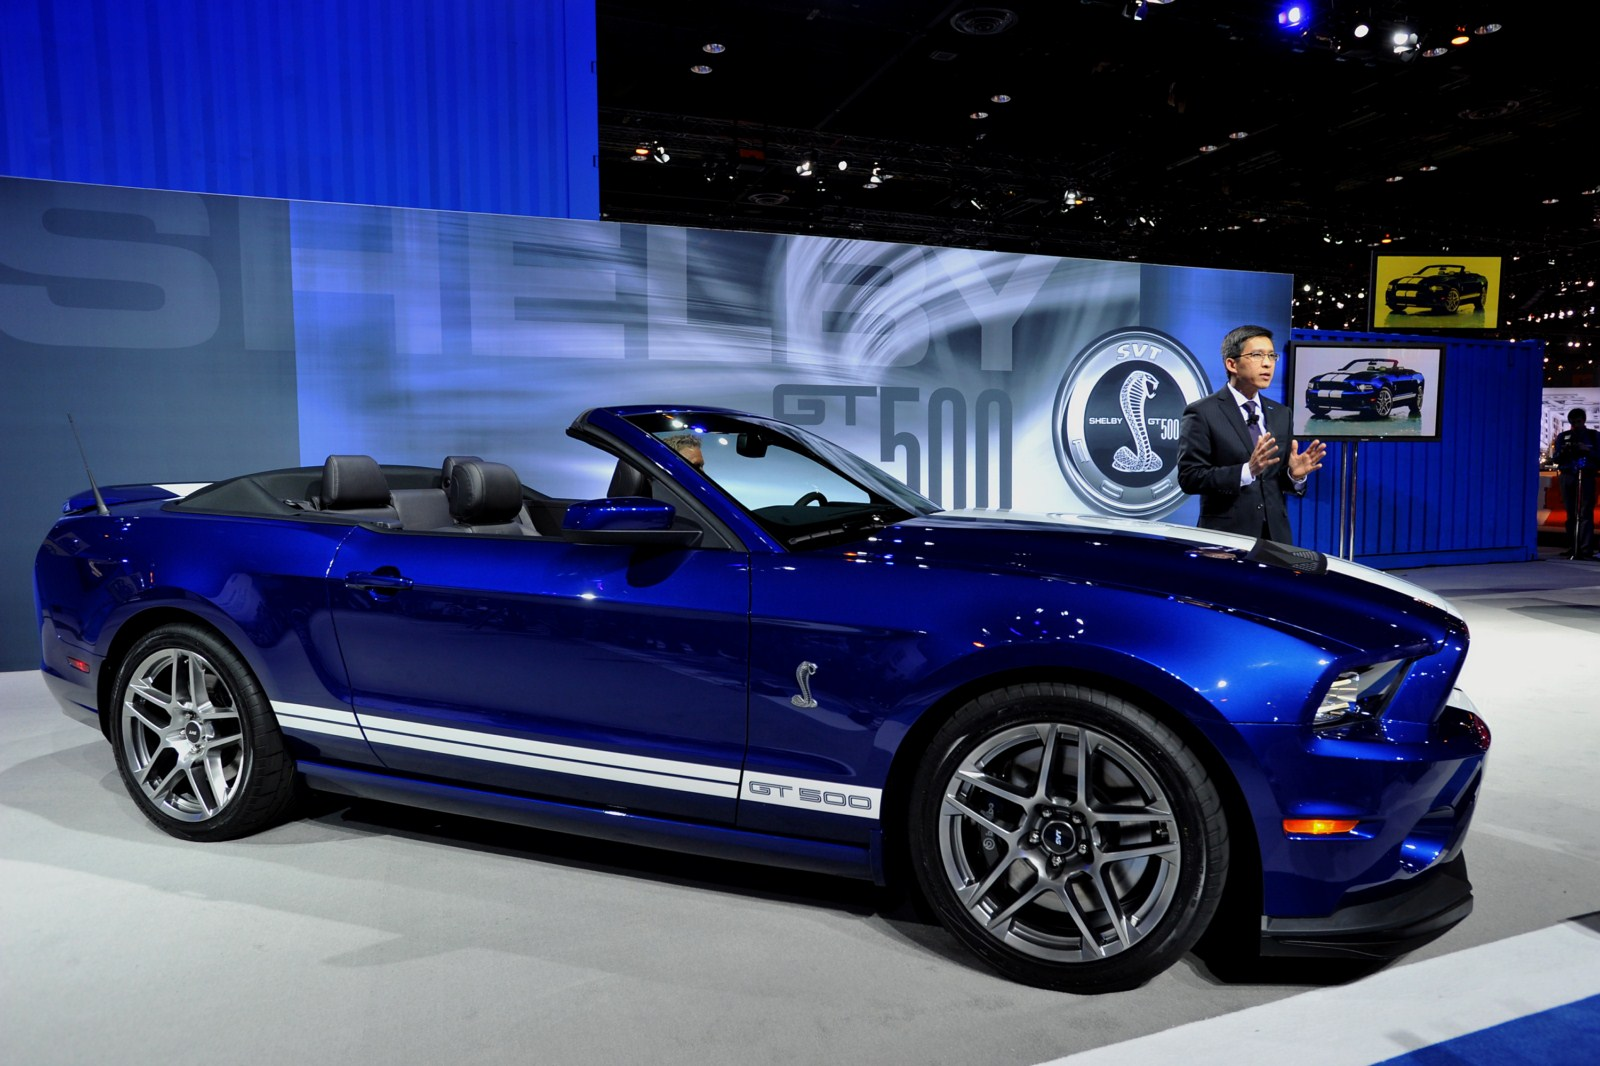 2022 Ford Mustang Shelby Gt500 Convertible